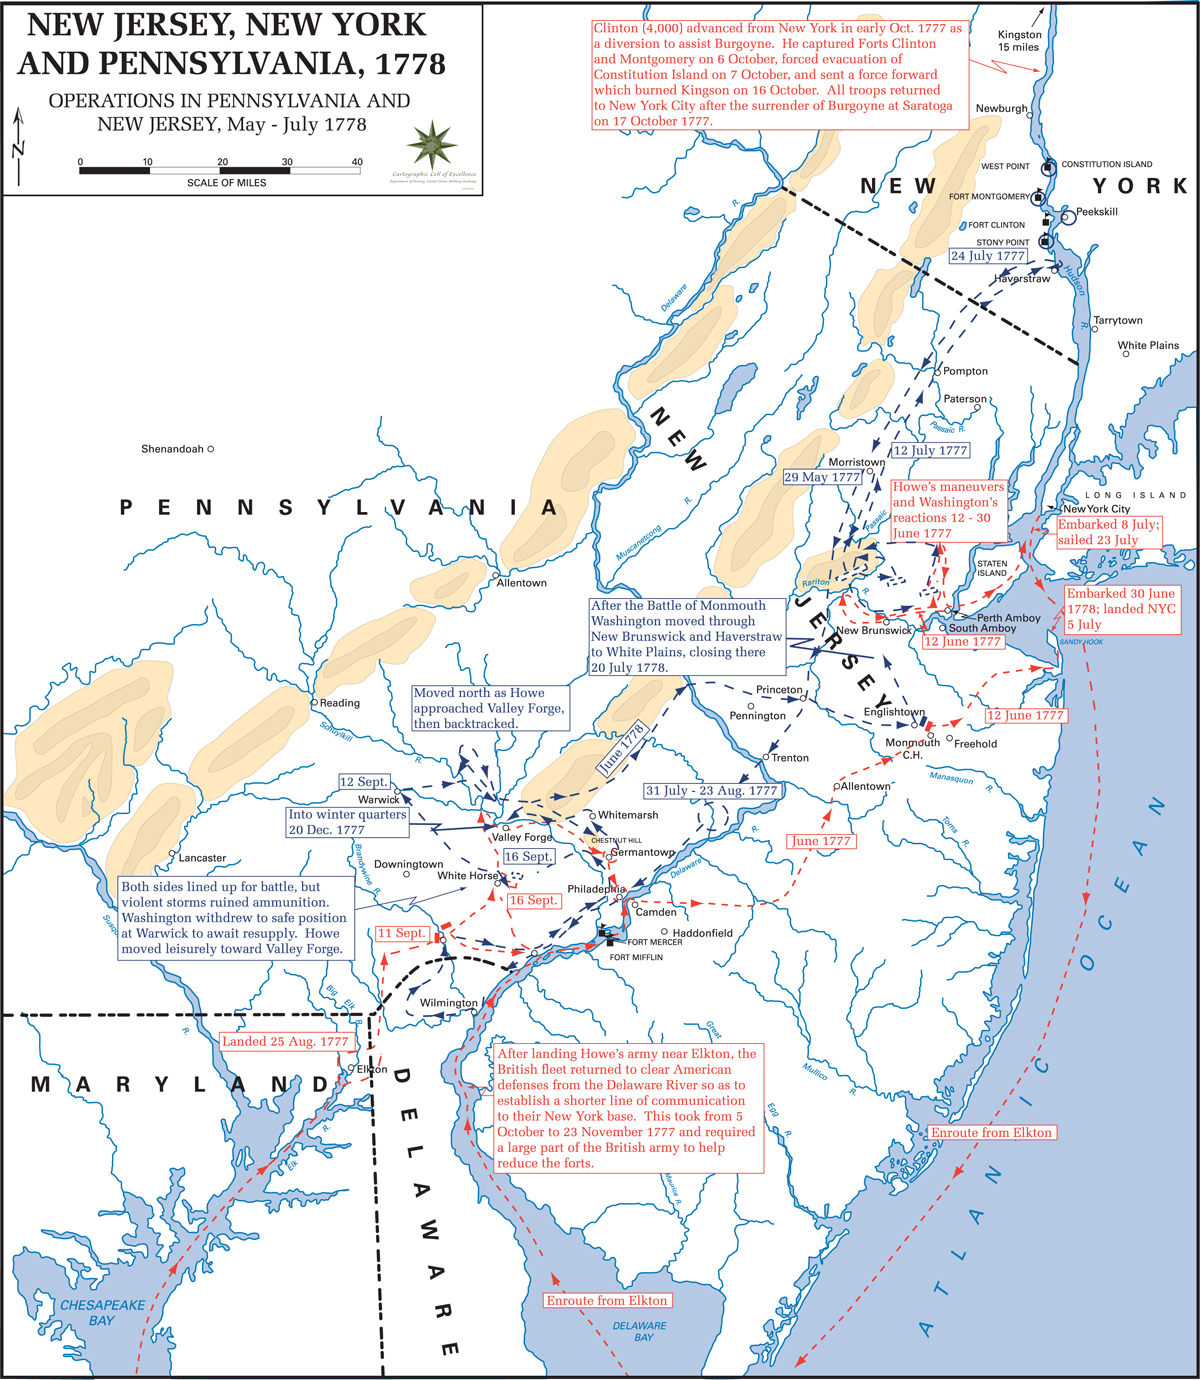 Map Of New York During American Revolution.Map Of The American Revolution May July 1778